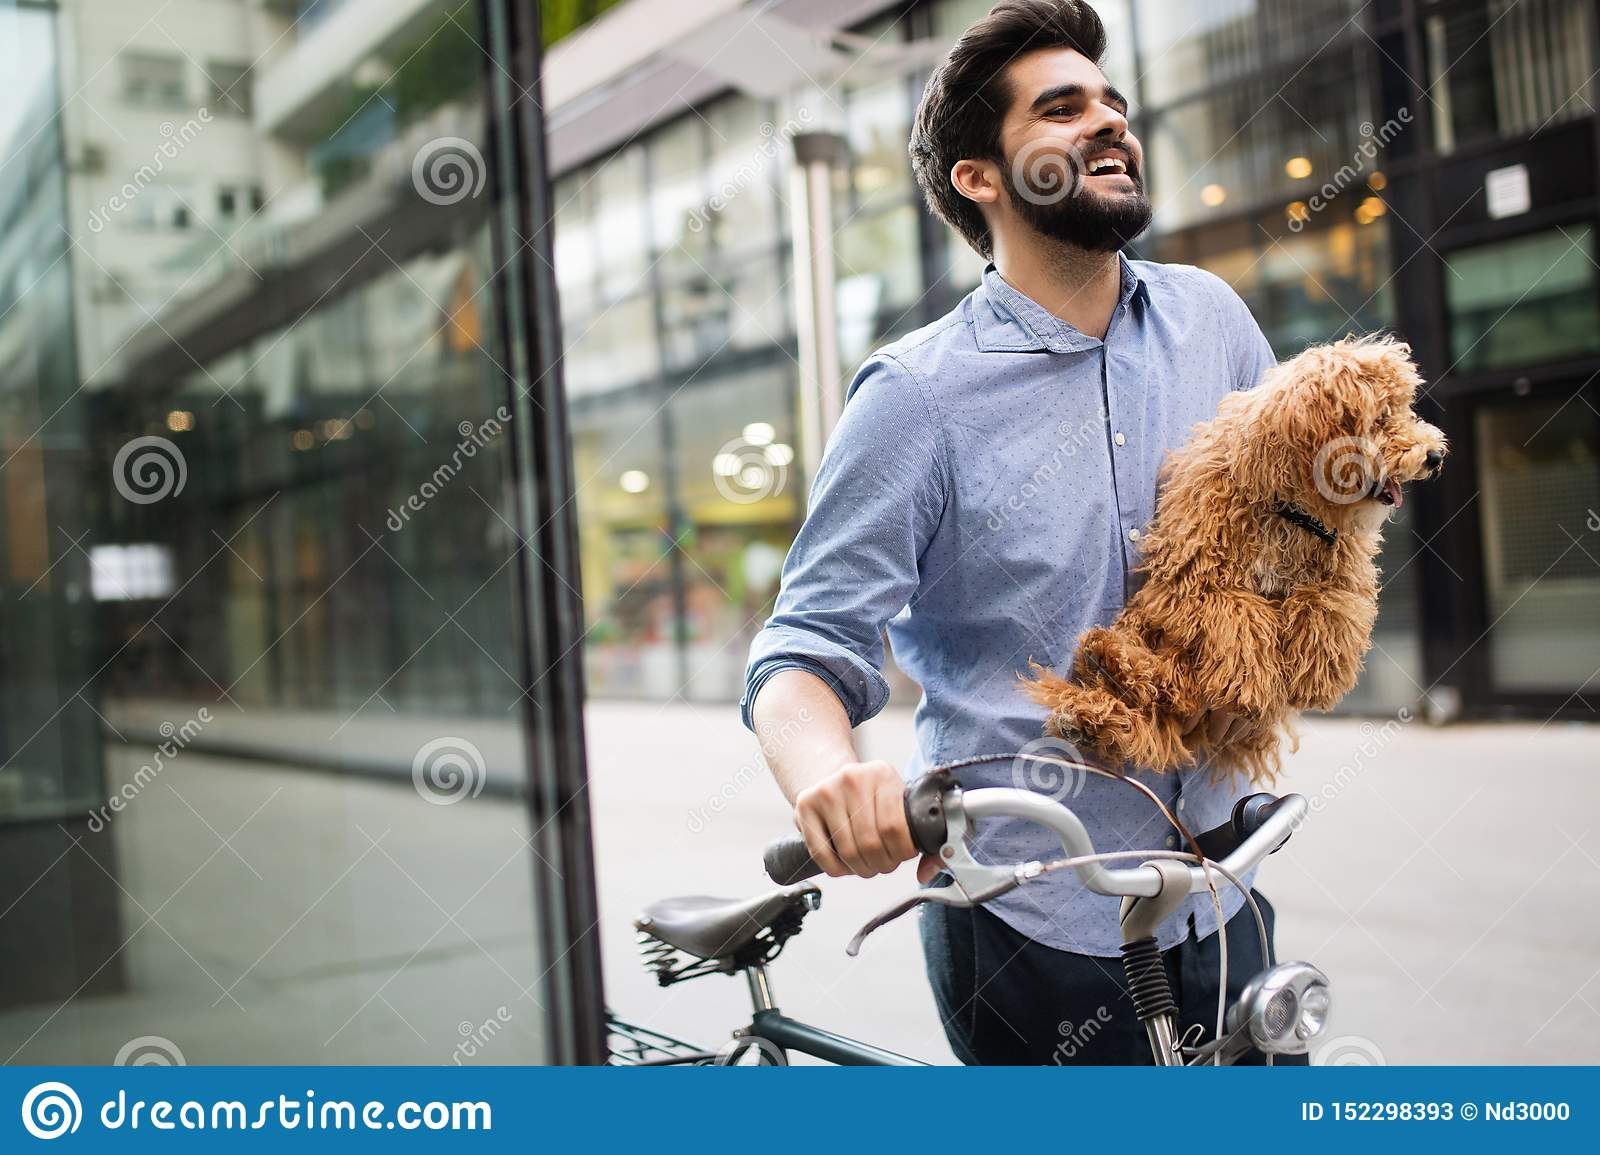 Happy young man holding dog in hands outdoors in city